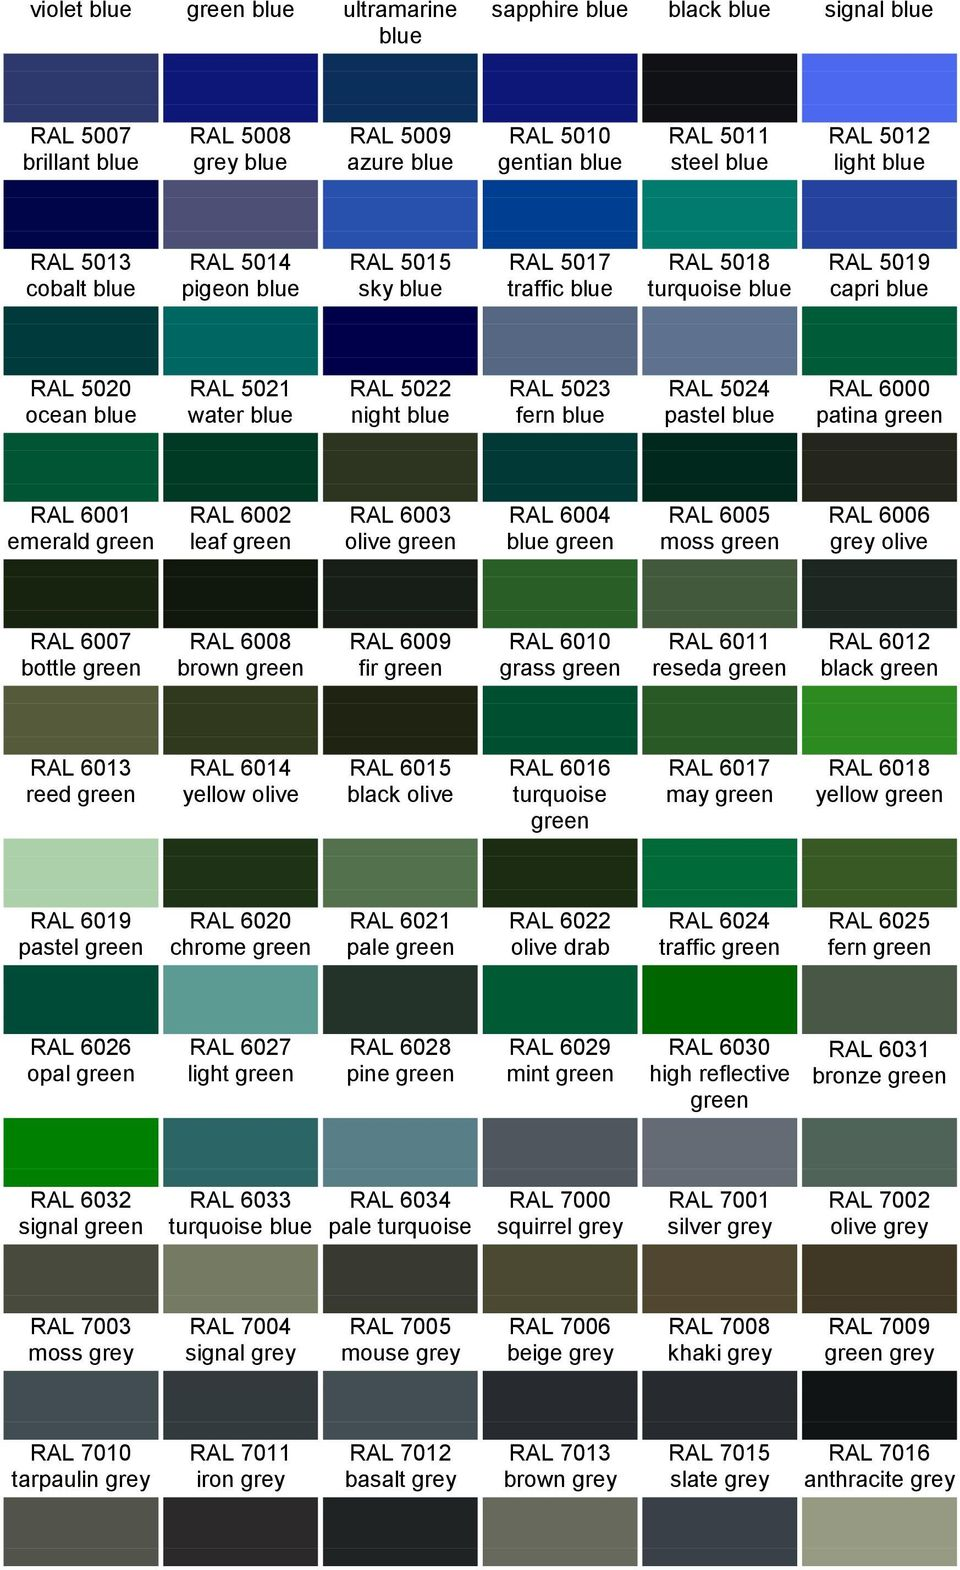 fern blue RAL 5024 pastel blue RAL 6000 patina green RAL 6001 emerald green RAL 6002 leaf green RAL 6003 olive green RAL 6004 blue green RAL 6005 moss green RAL 6006 grey olive RAL 6007 bottle green